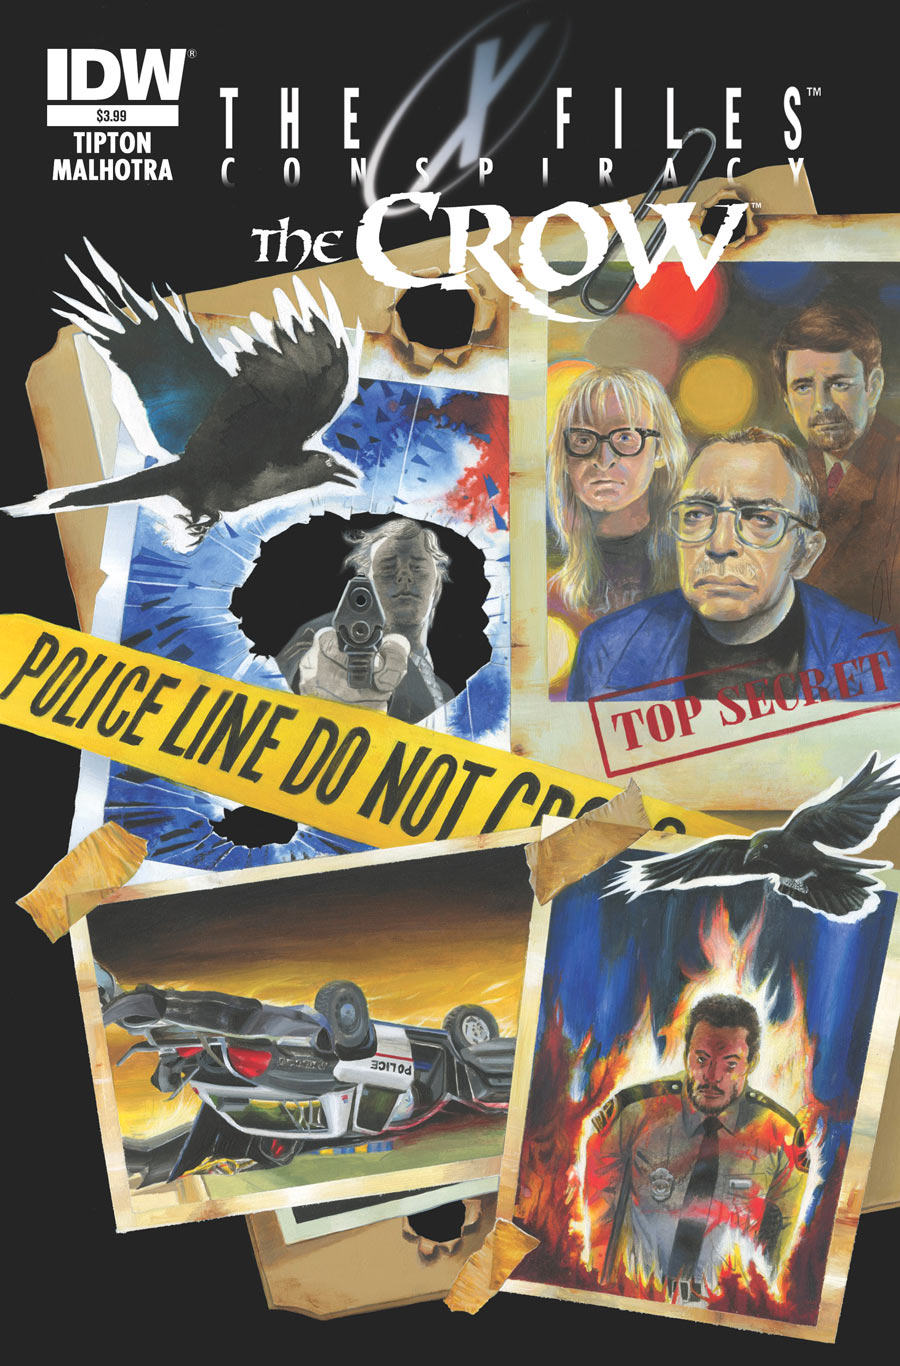 x files%20the%20crow March Geek Guide: Captain America, Ghostbusters, Back to the Future, Star Trek and More